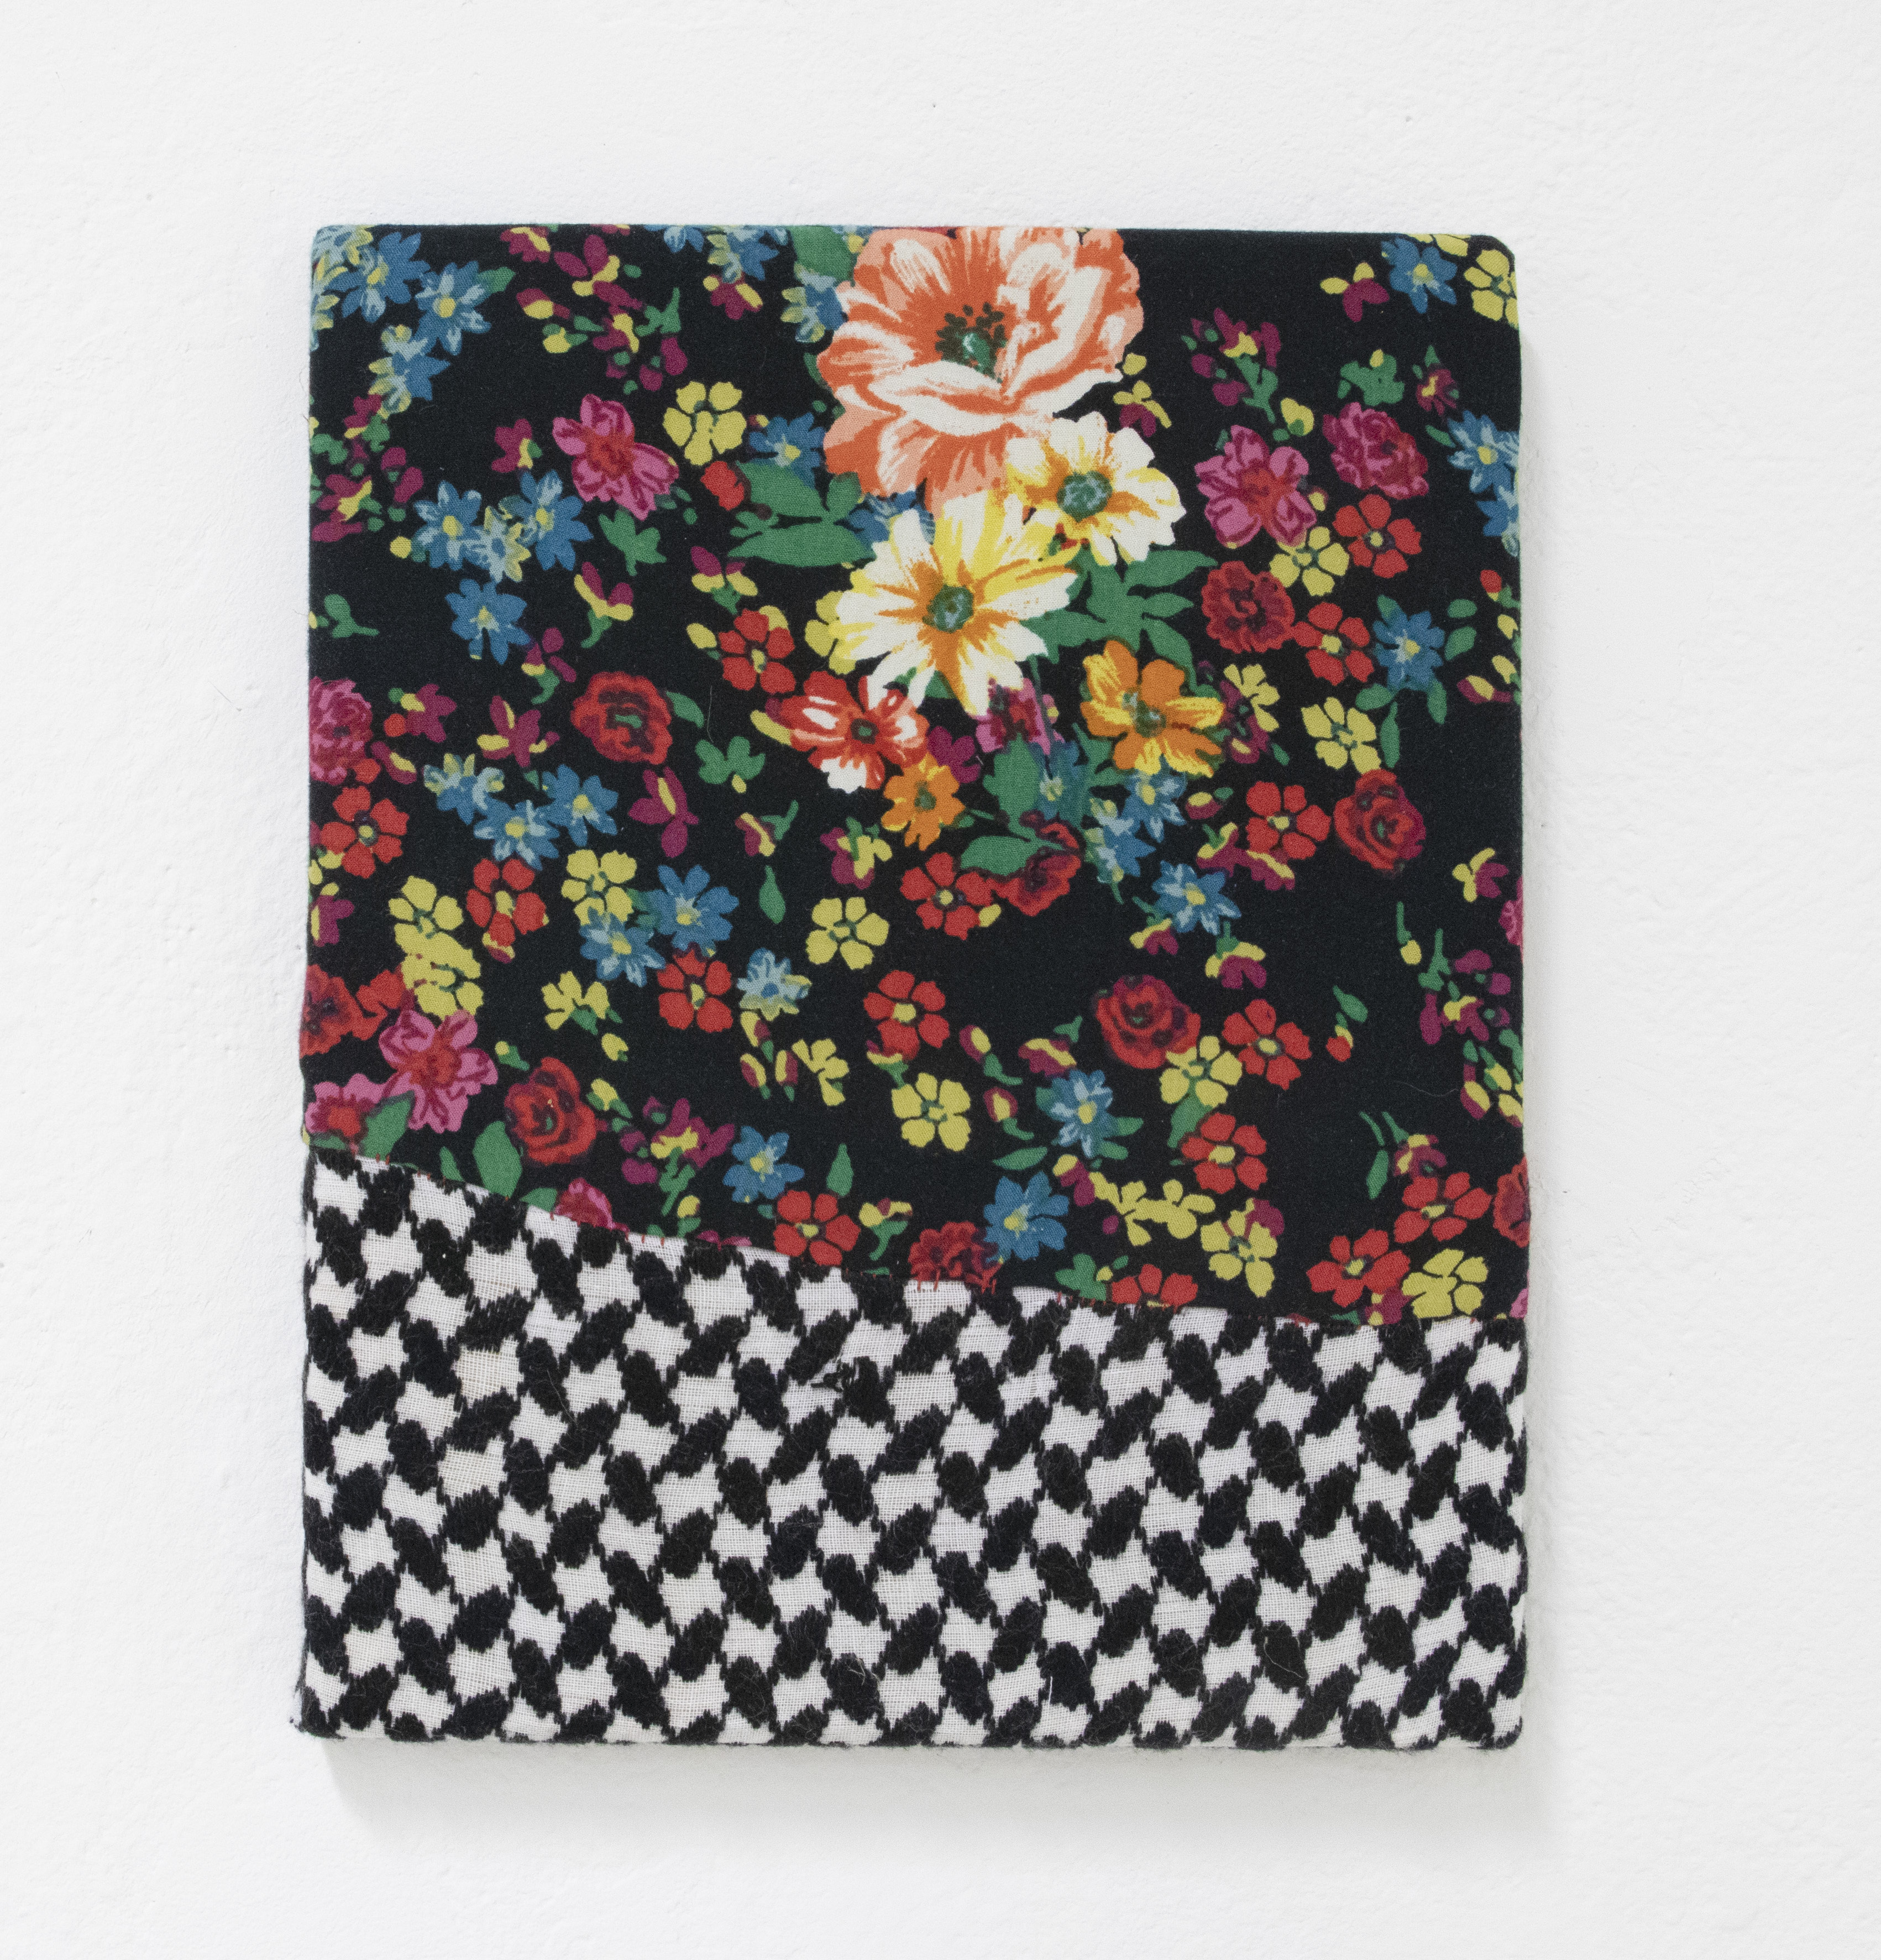 """Nuveen Barwari, """"He reminded me that the flowers in-front of me have a scent too"""", old dress, dad's old scarf, thread, 8"""" x 10"""", 2021"""